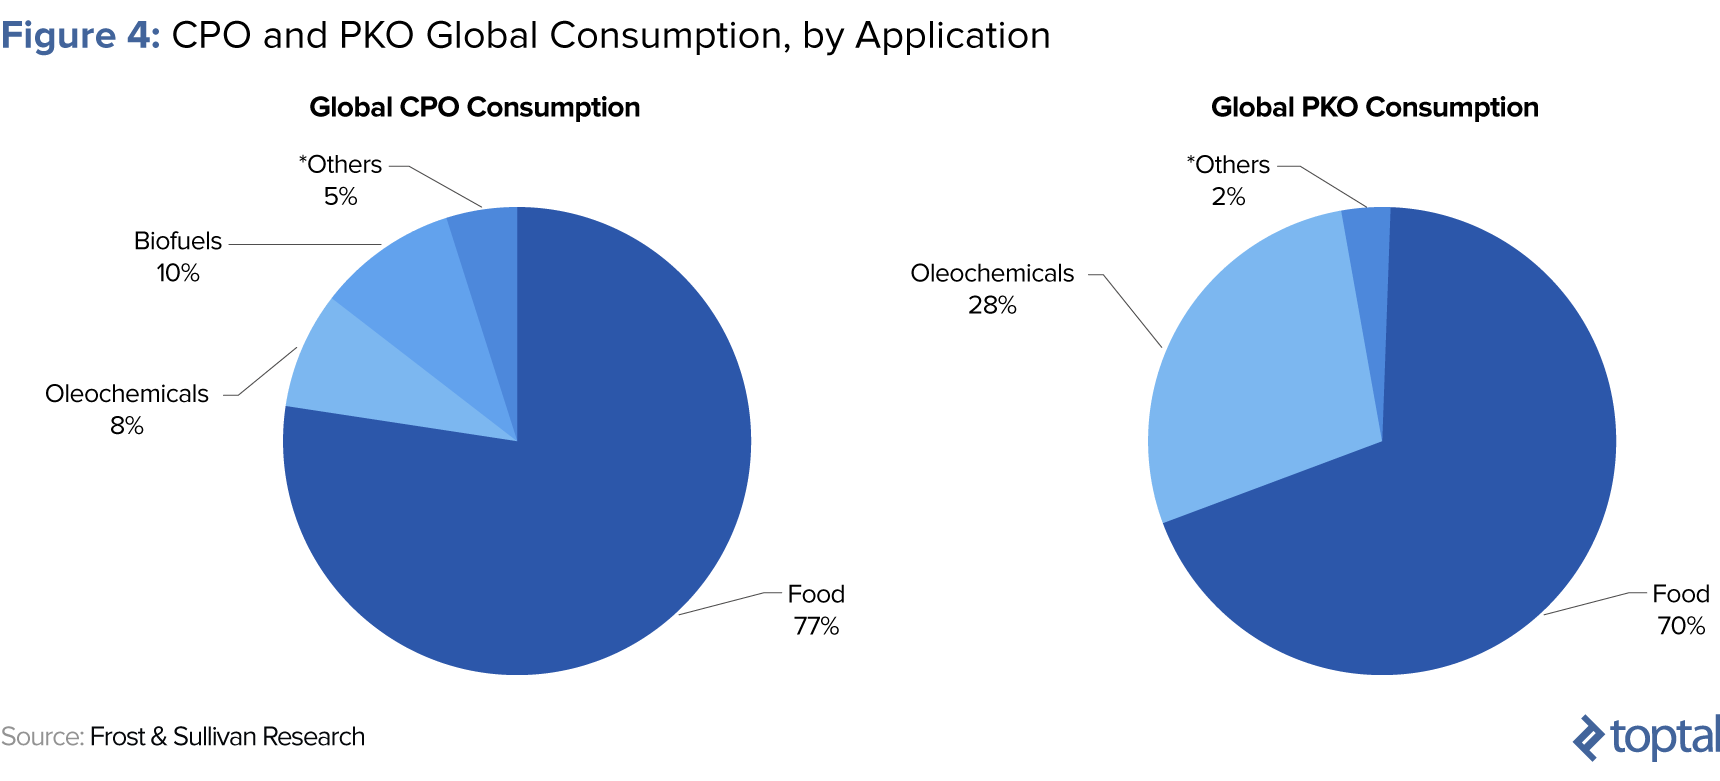 Figure 4: CPO and PKO Global Consumption, by Application